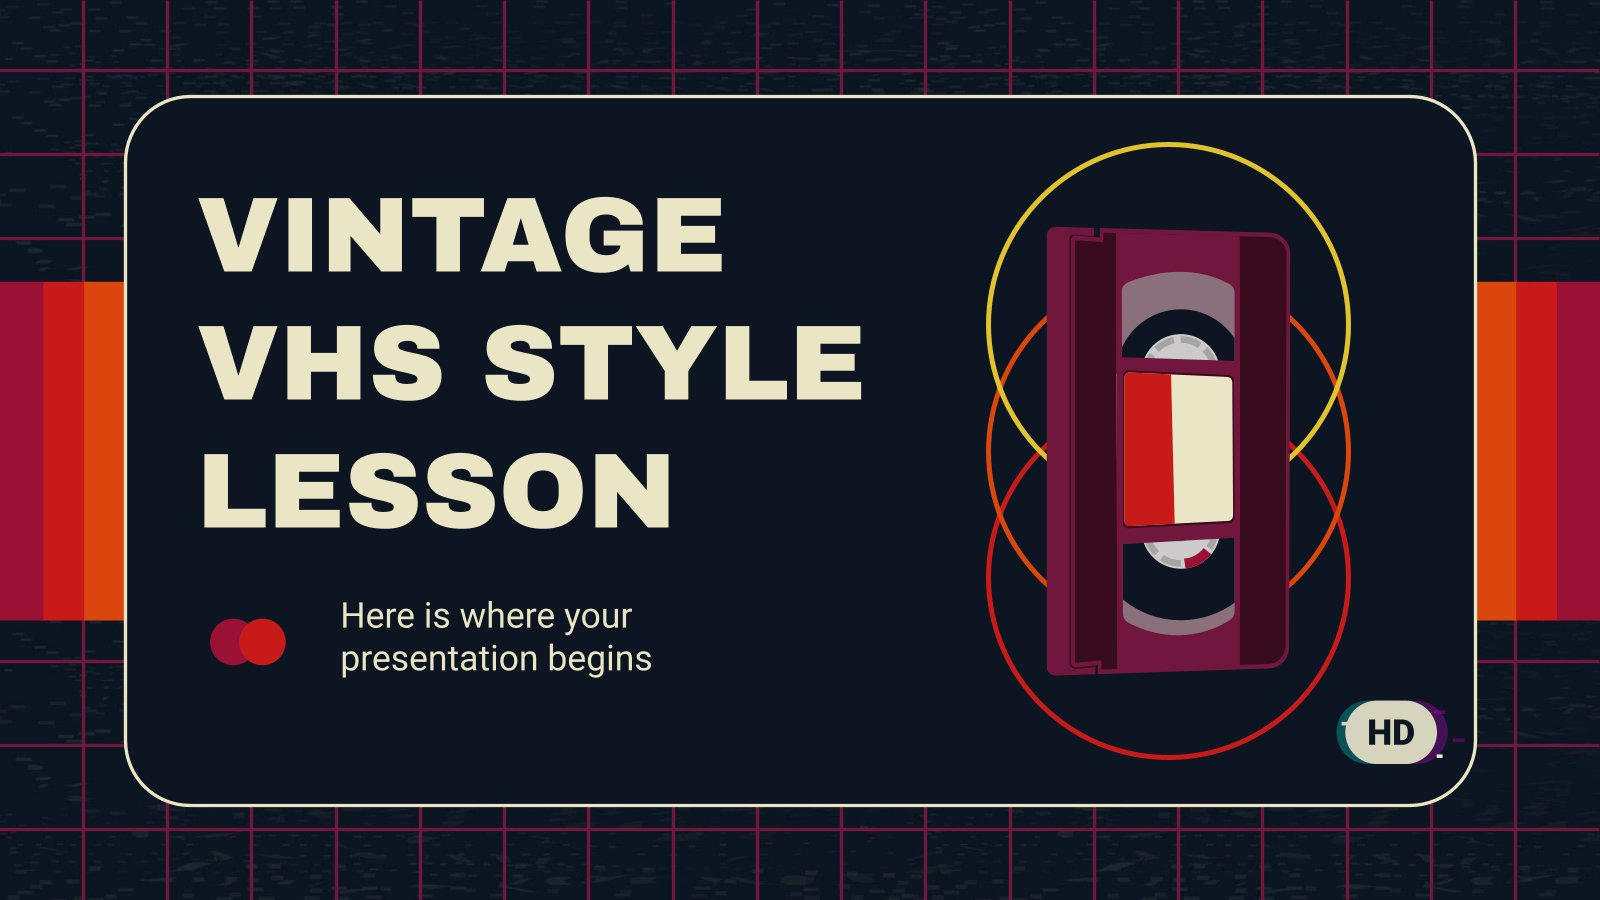 Vintage VHS Style Lesson presentation template